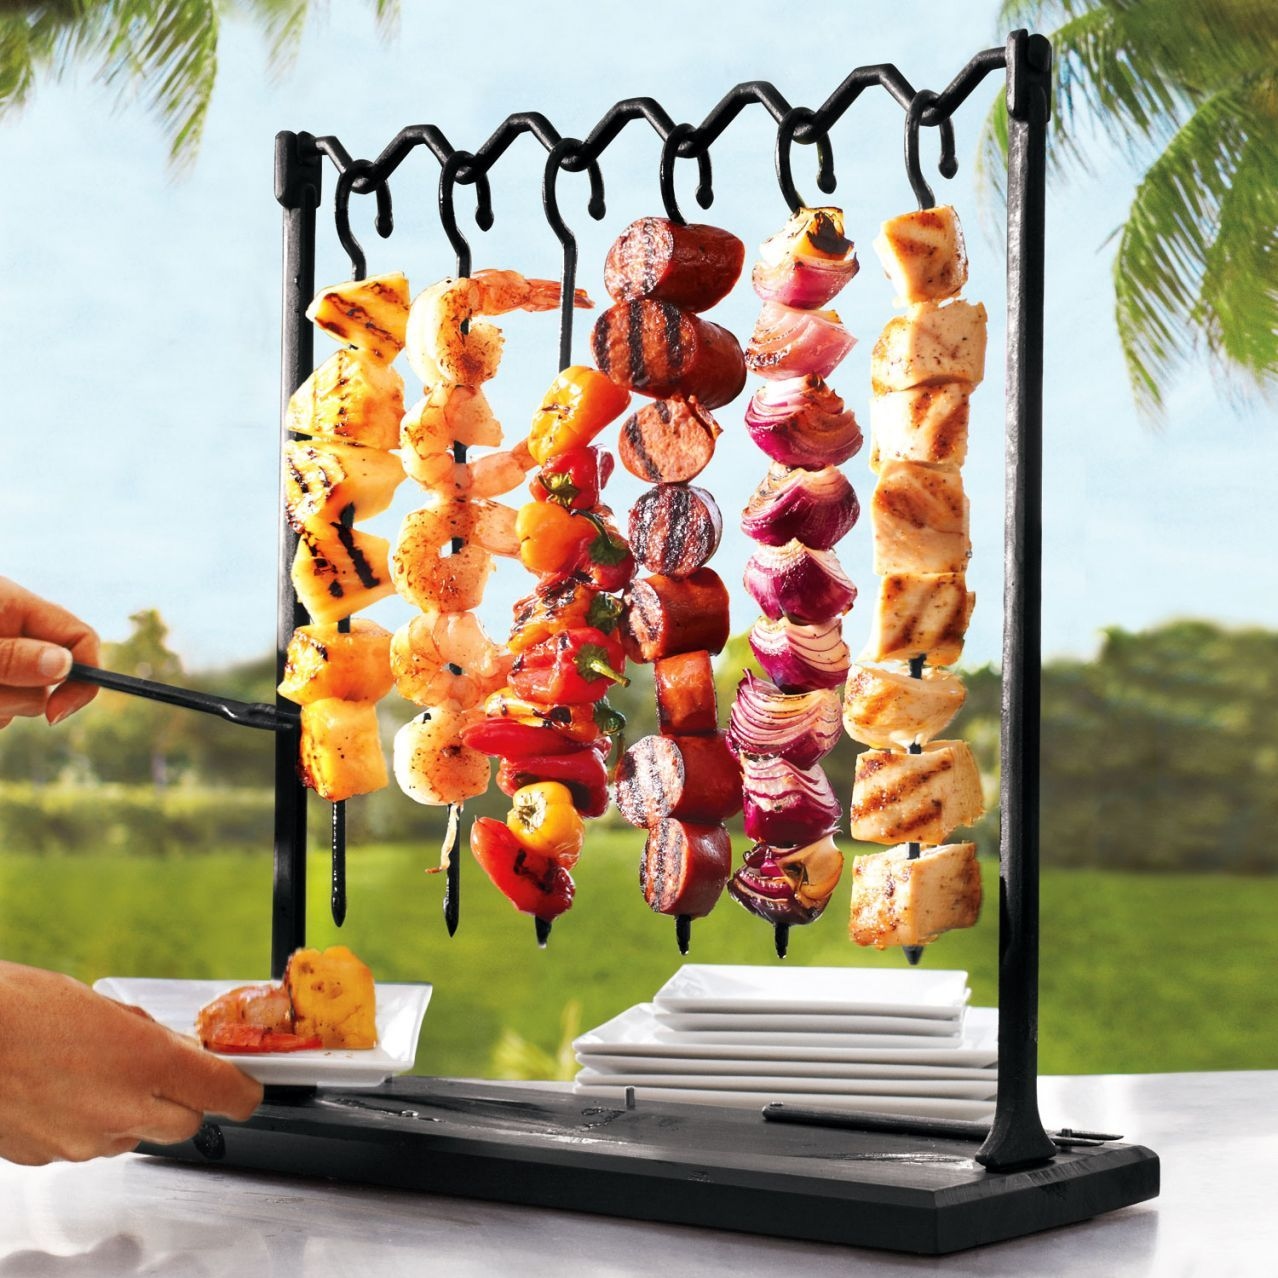 Delightful Fatheru0027s Day Gift Ideas: Sur La Table® Skewer Station And Skewers